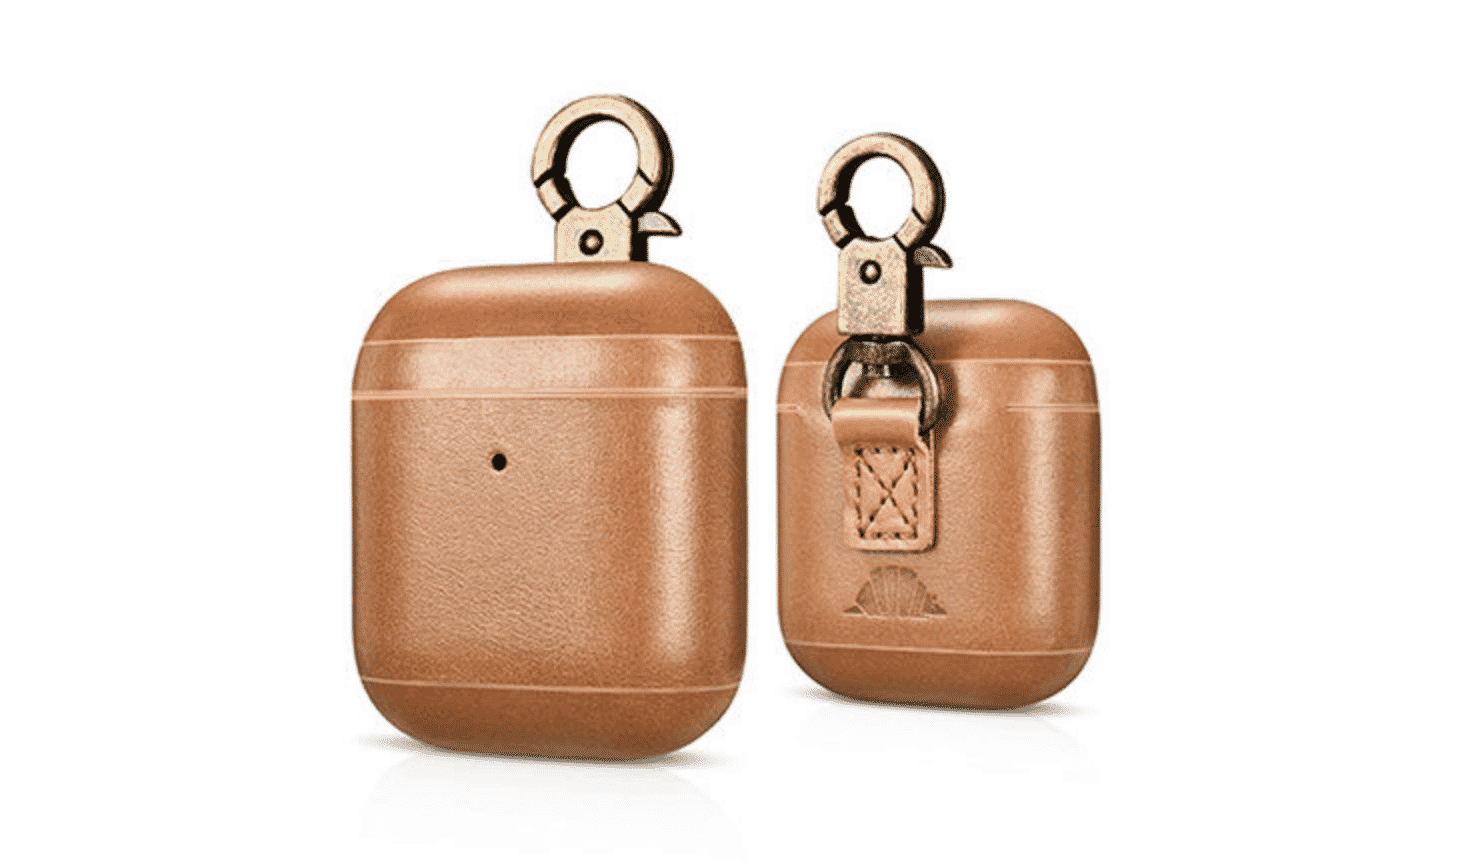 CarryOn Handmade Leather AirPod Case with Carabiner